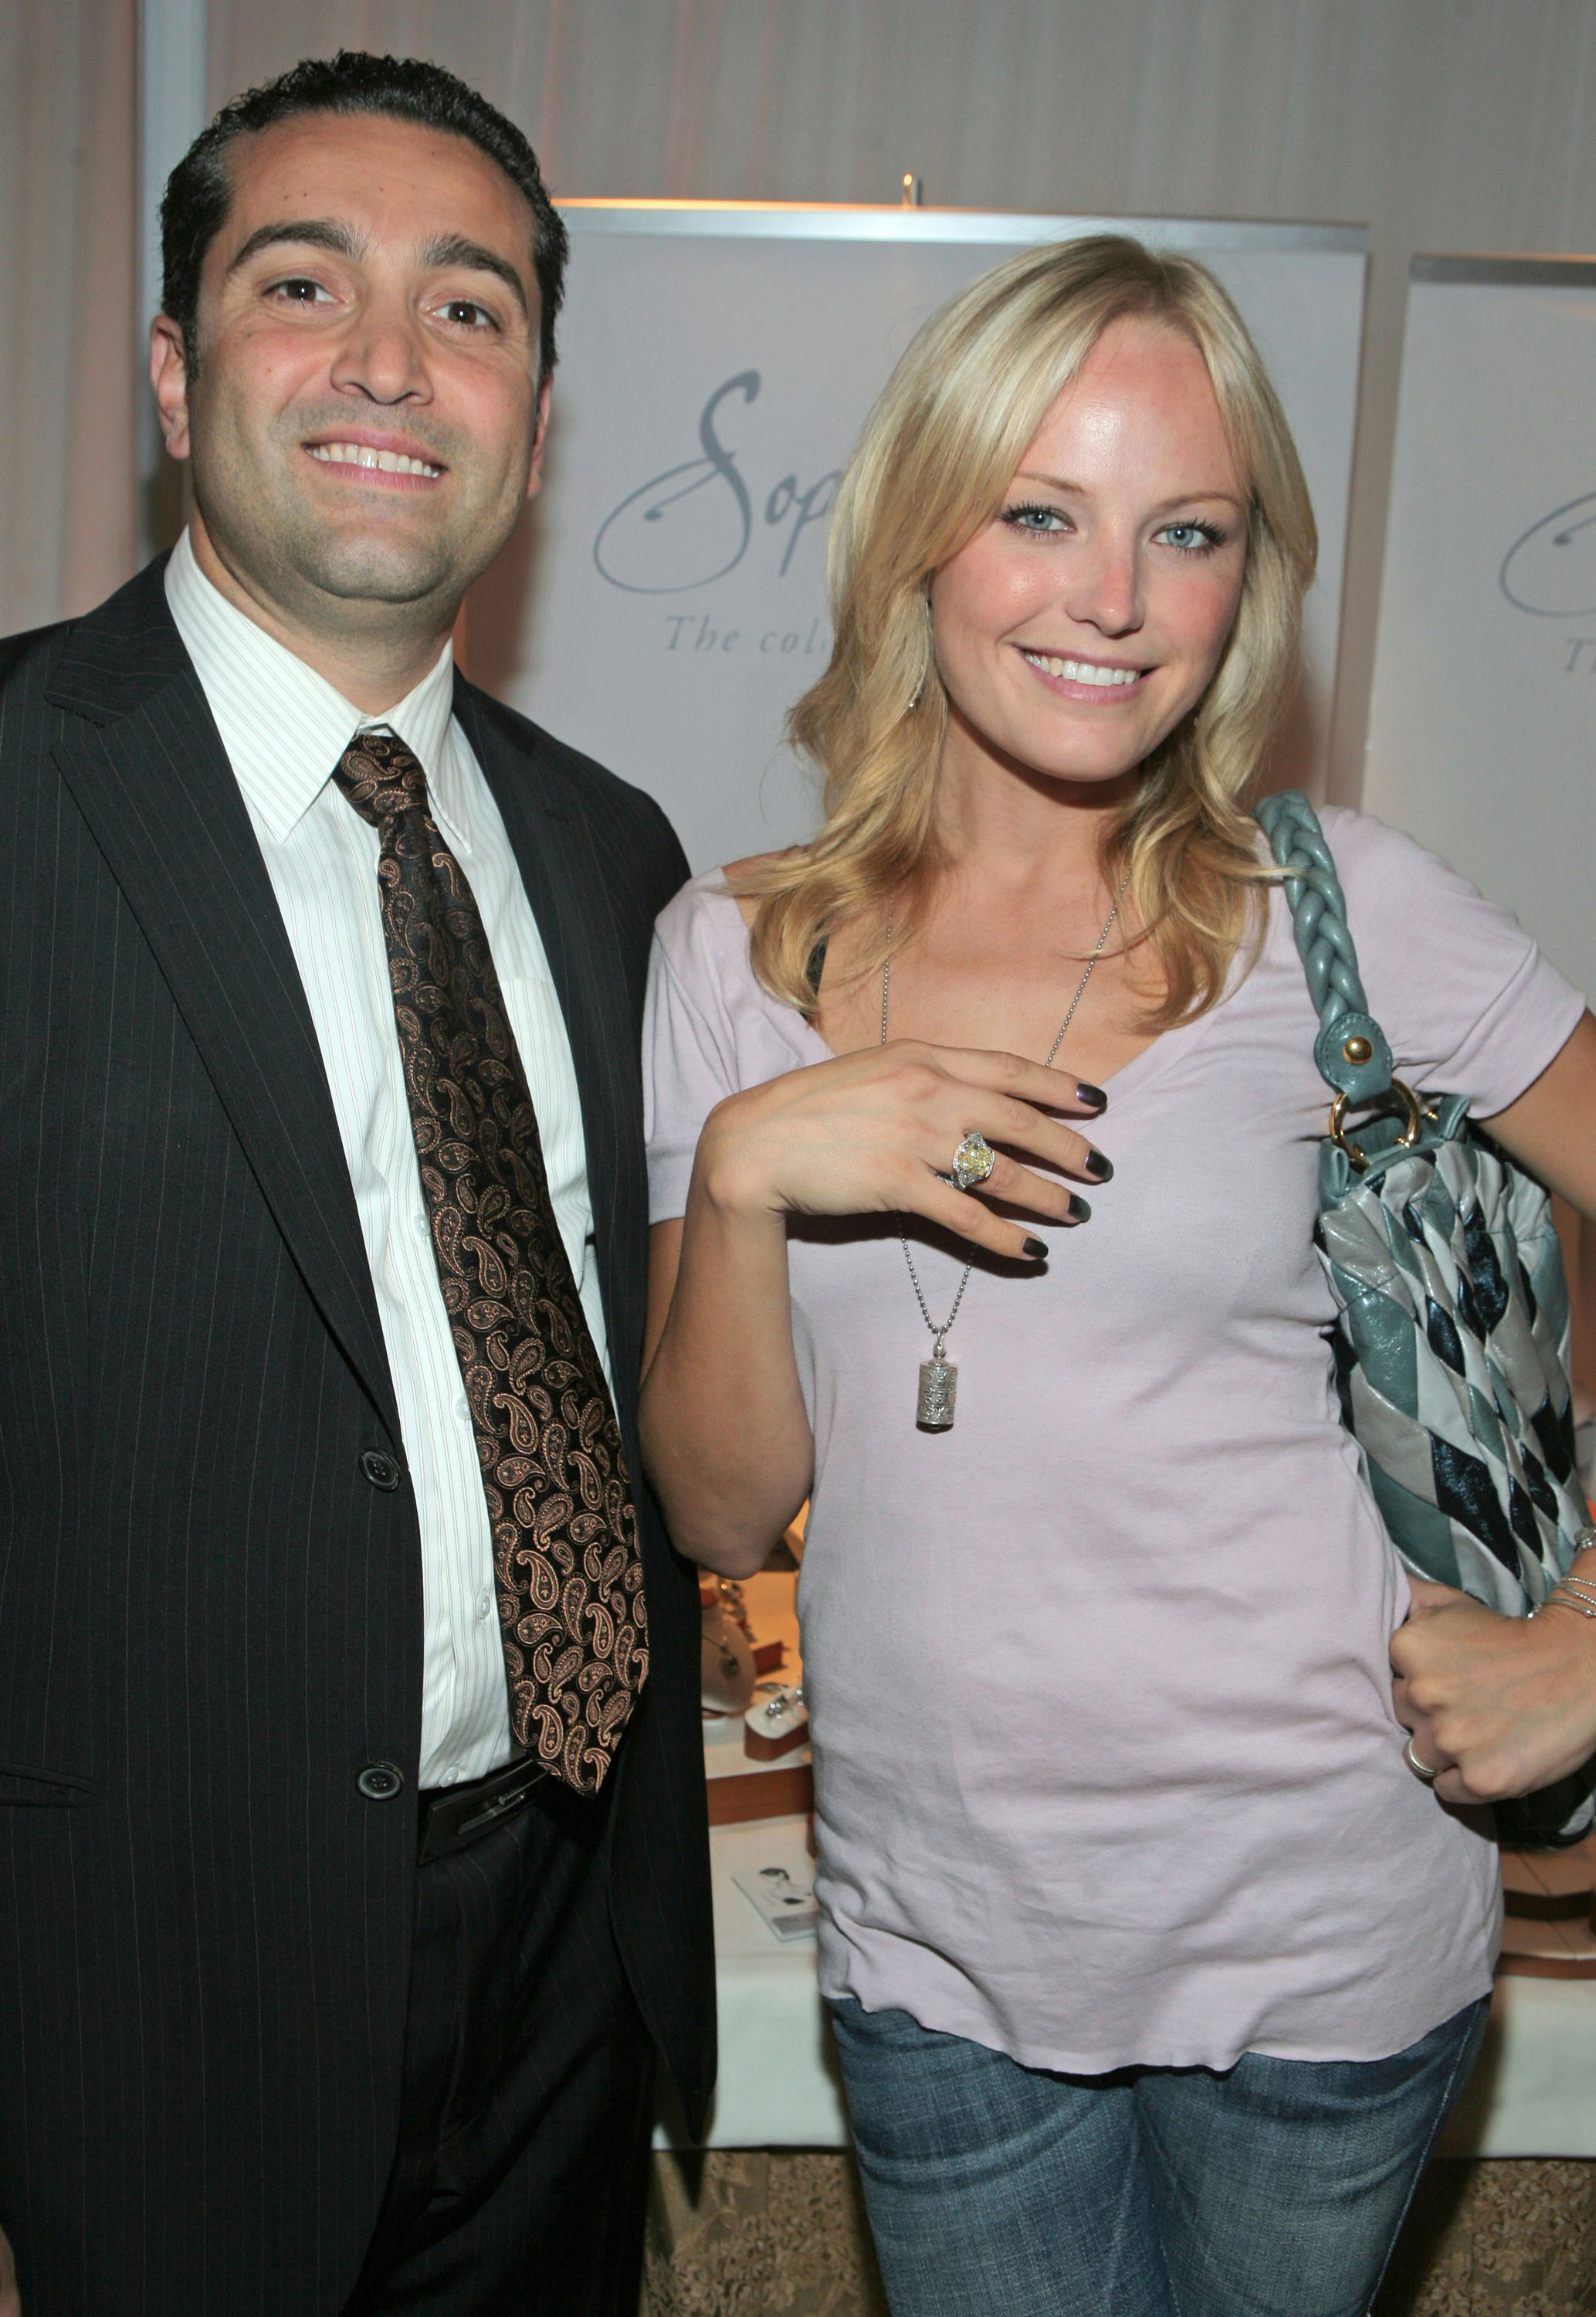 03467_Celebutopia-Malin_Akerman-HBO_Luxury_Lounge_In_Honor_of_the_60th_Annual_Primetime_Emmy_Awards-12_122_466lo.jpg